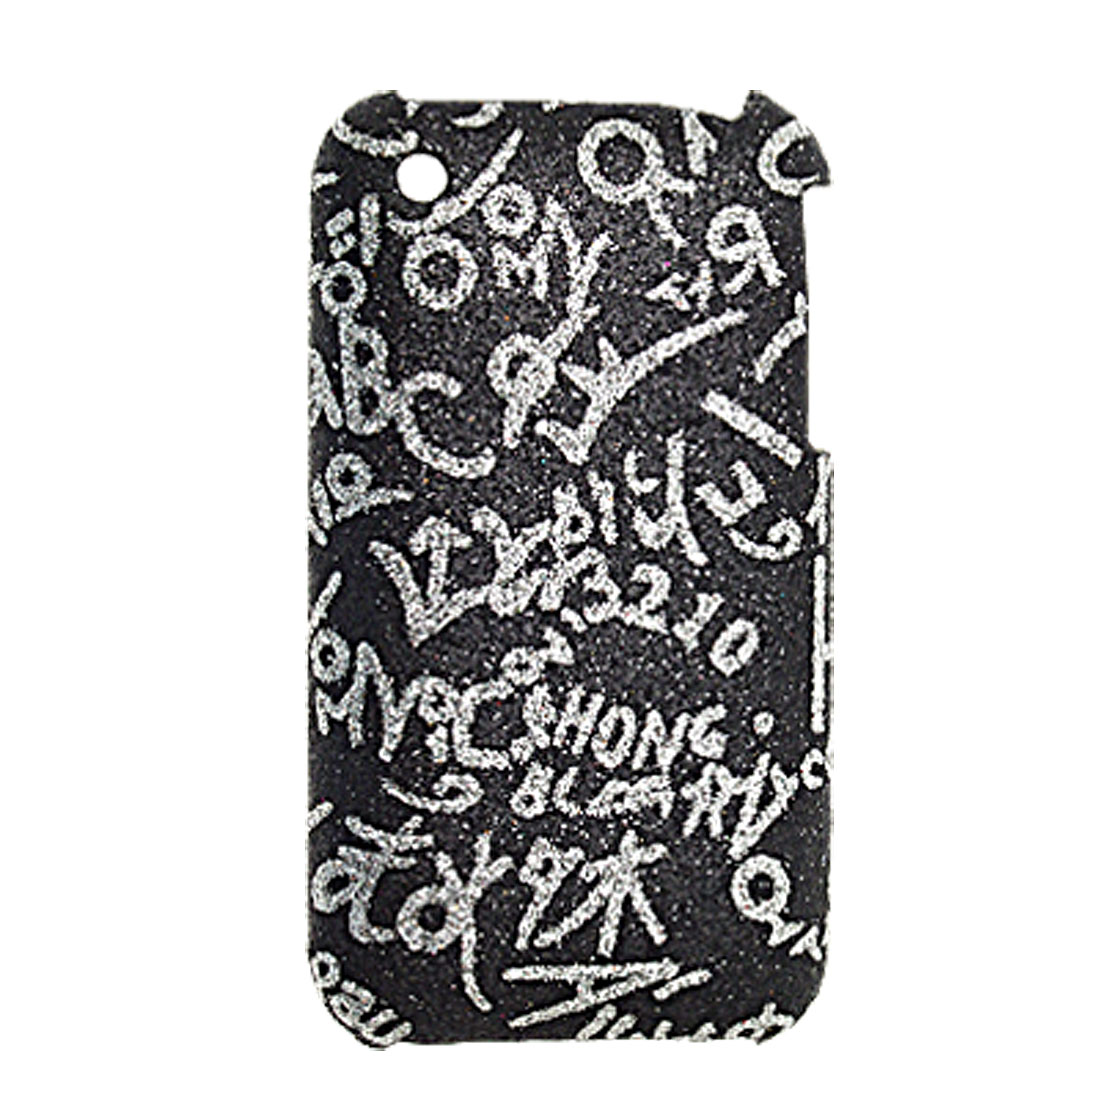 Plastic Back Case with Letter Pattern for iPhone 3GS Black